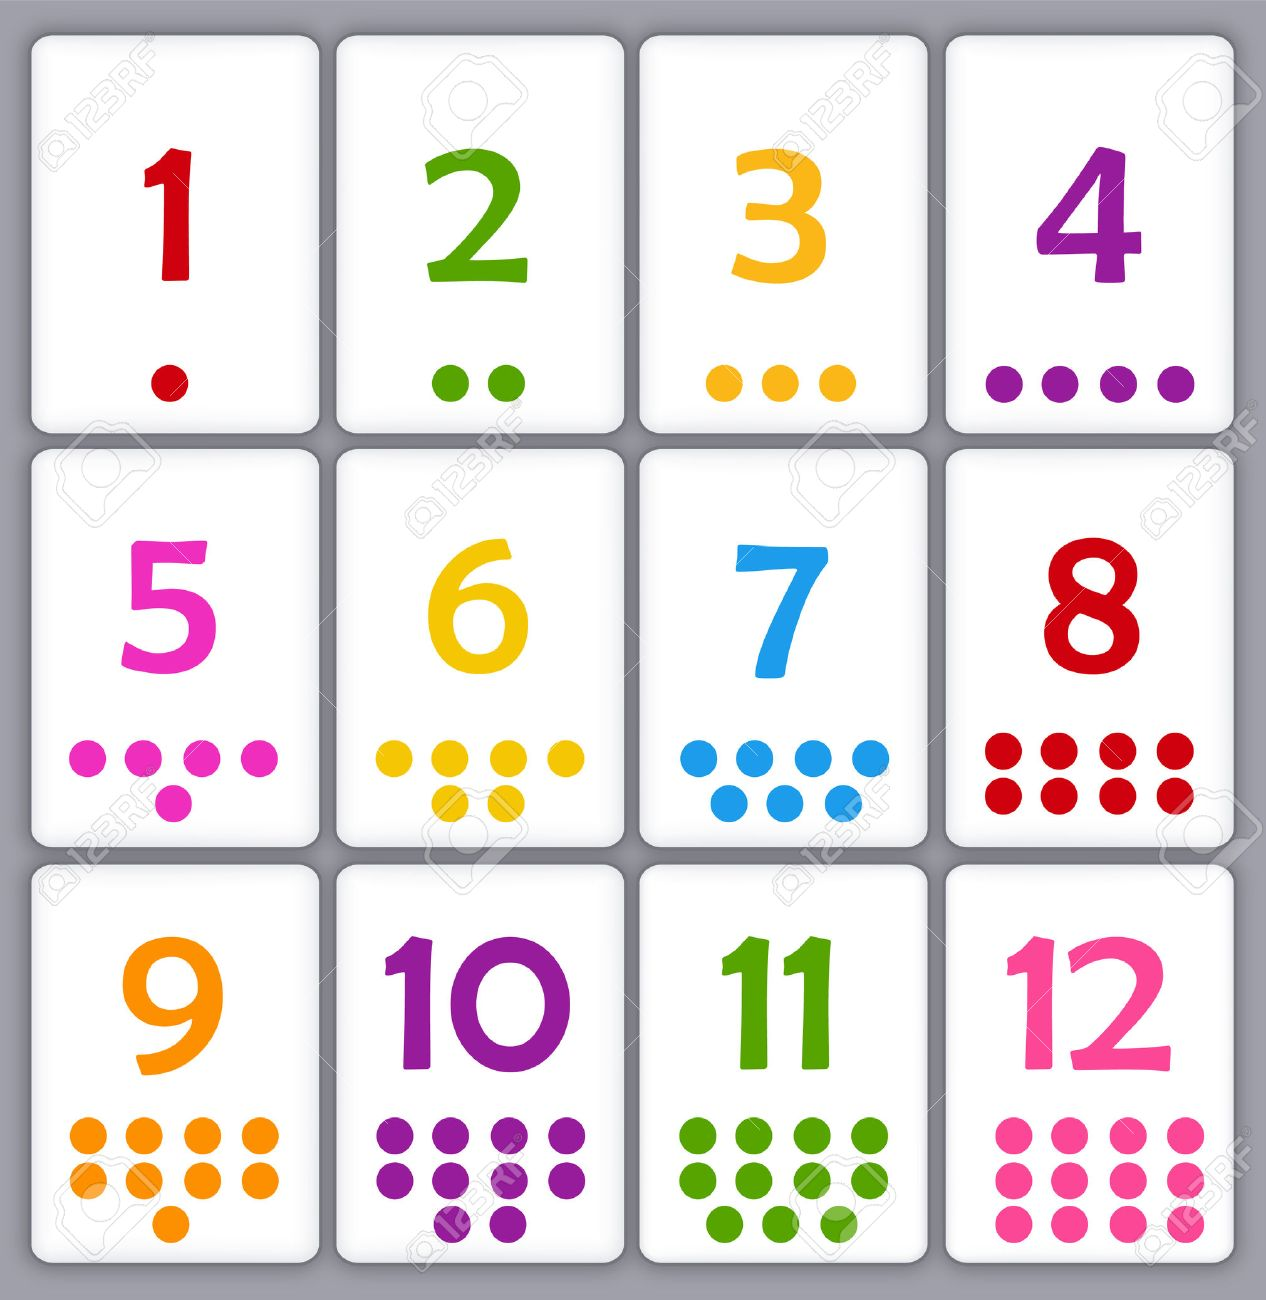 Printable Flash Card Colletion For Numbers With Dots For Preschool ...